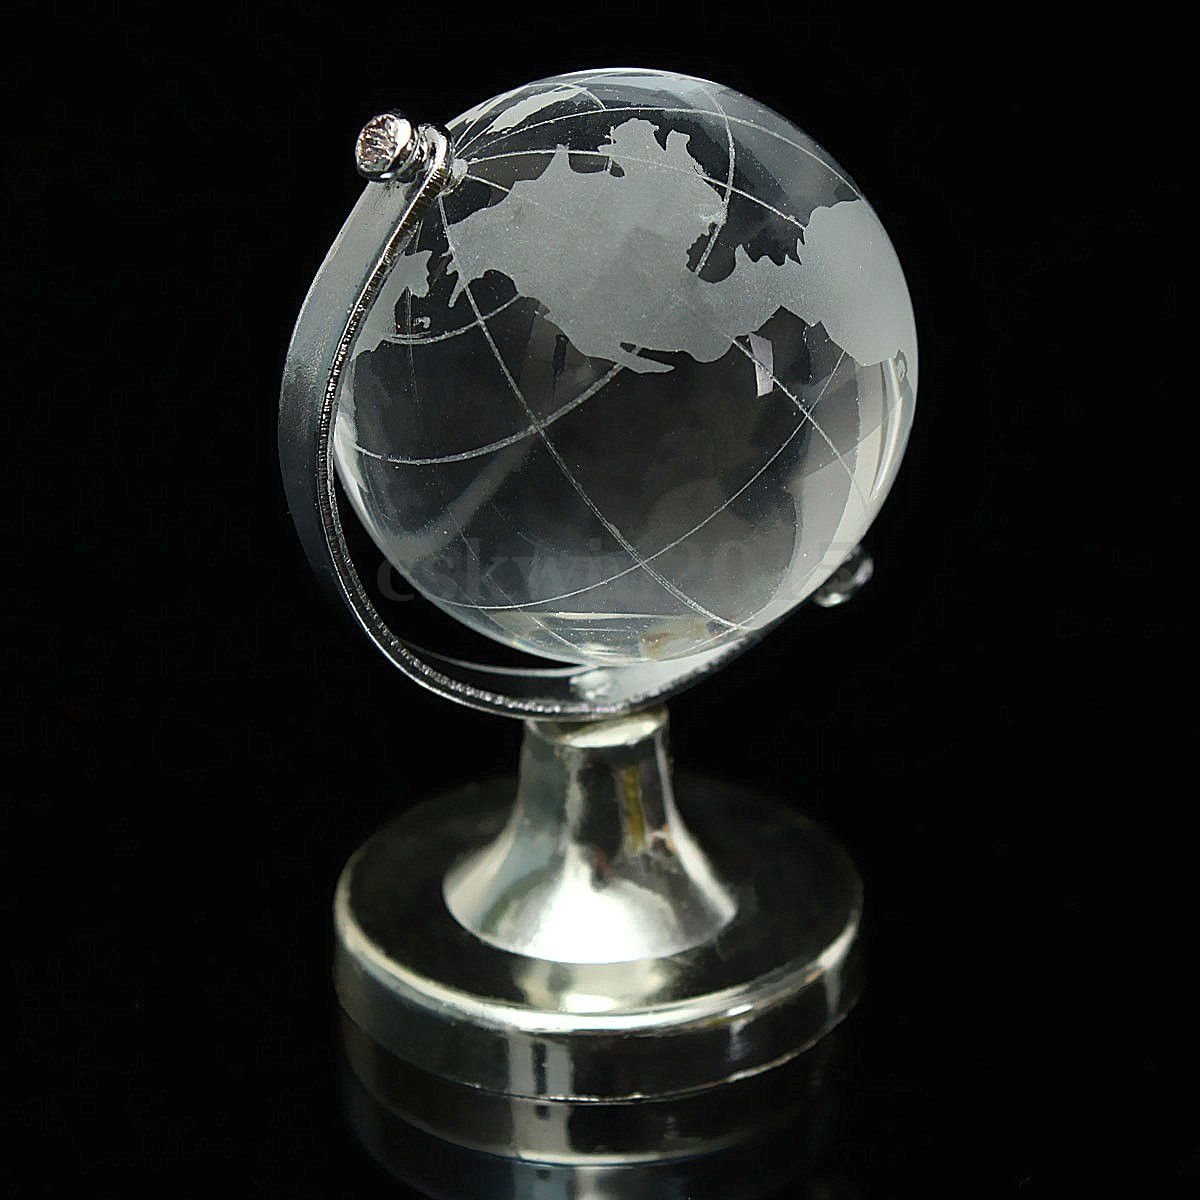 Modern clear world map globe crystal glass decoration for office modern clear world map globe crystal glass decoration for office desk decor us gumiabroncs Images